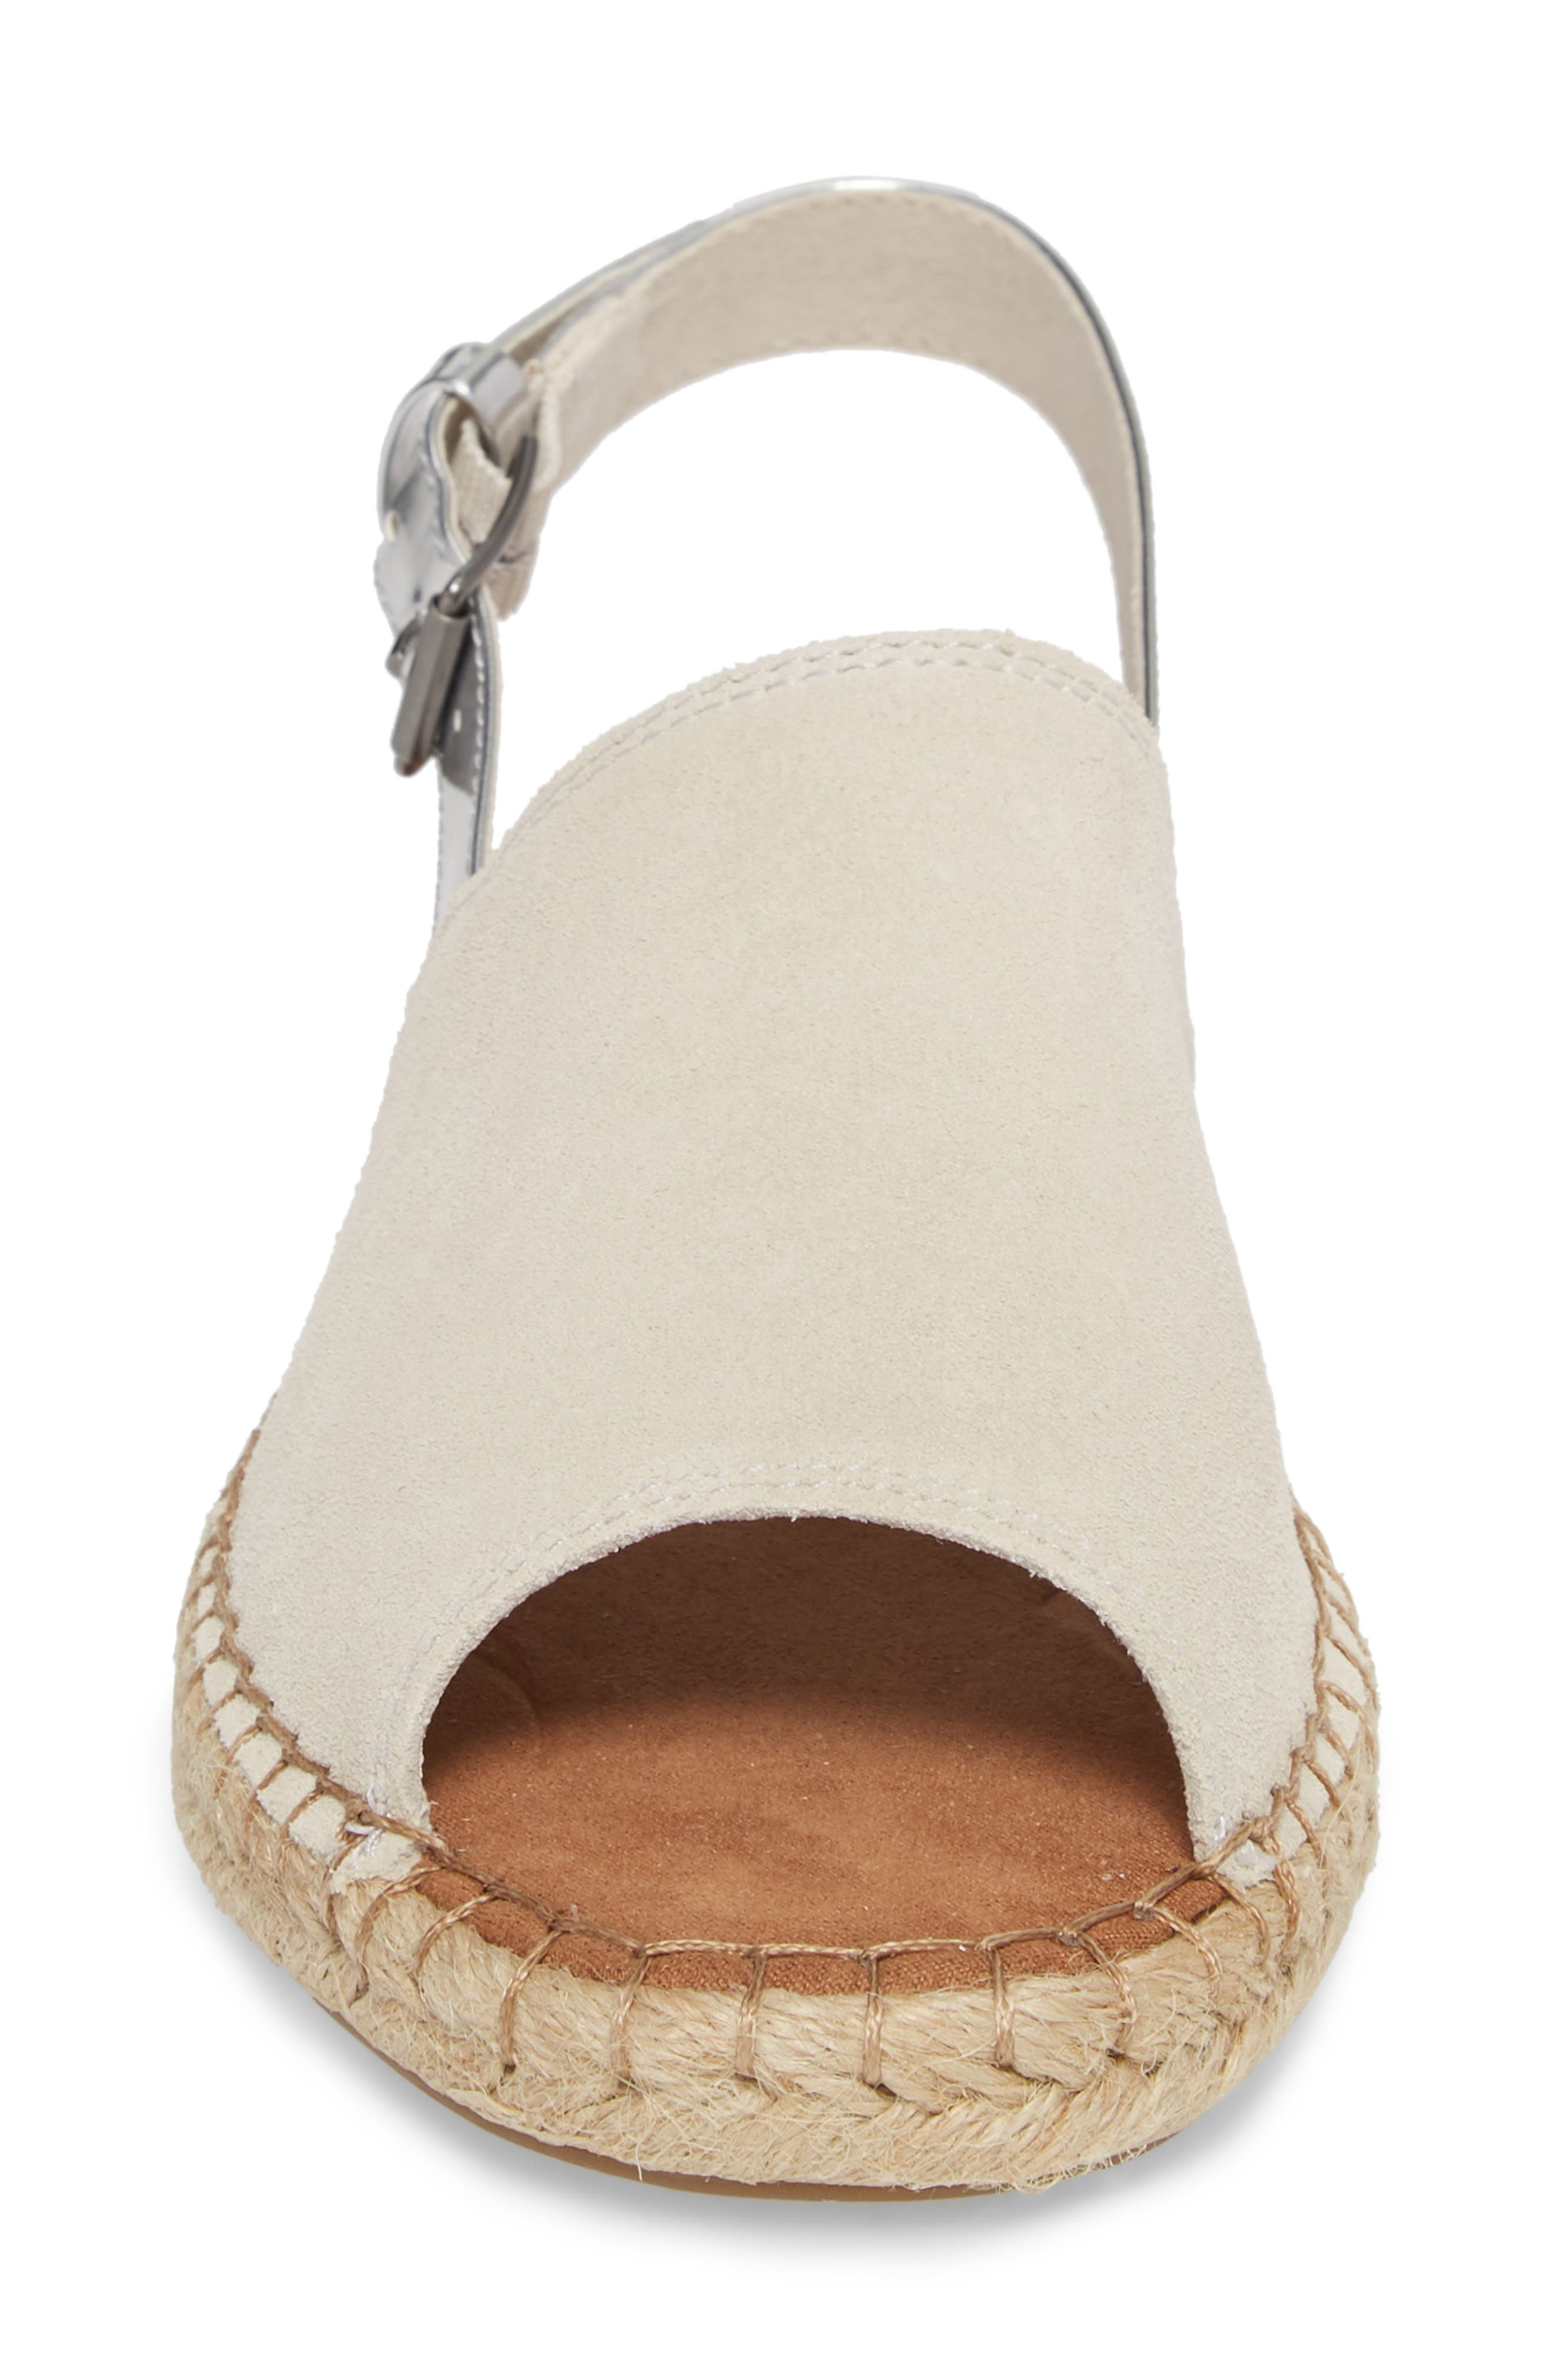 Clara Slingback Sandal,                             Alternate thumbnail 4, color,                             Birch Suede